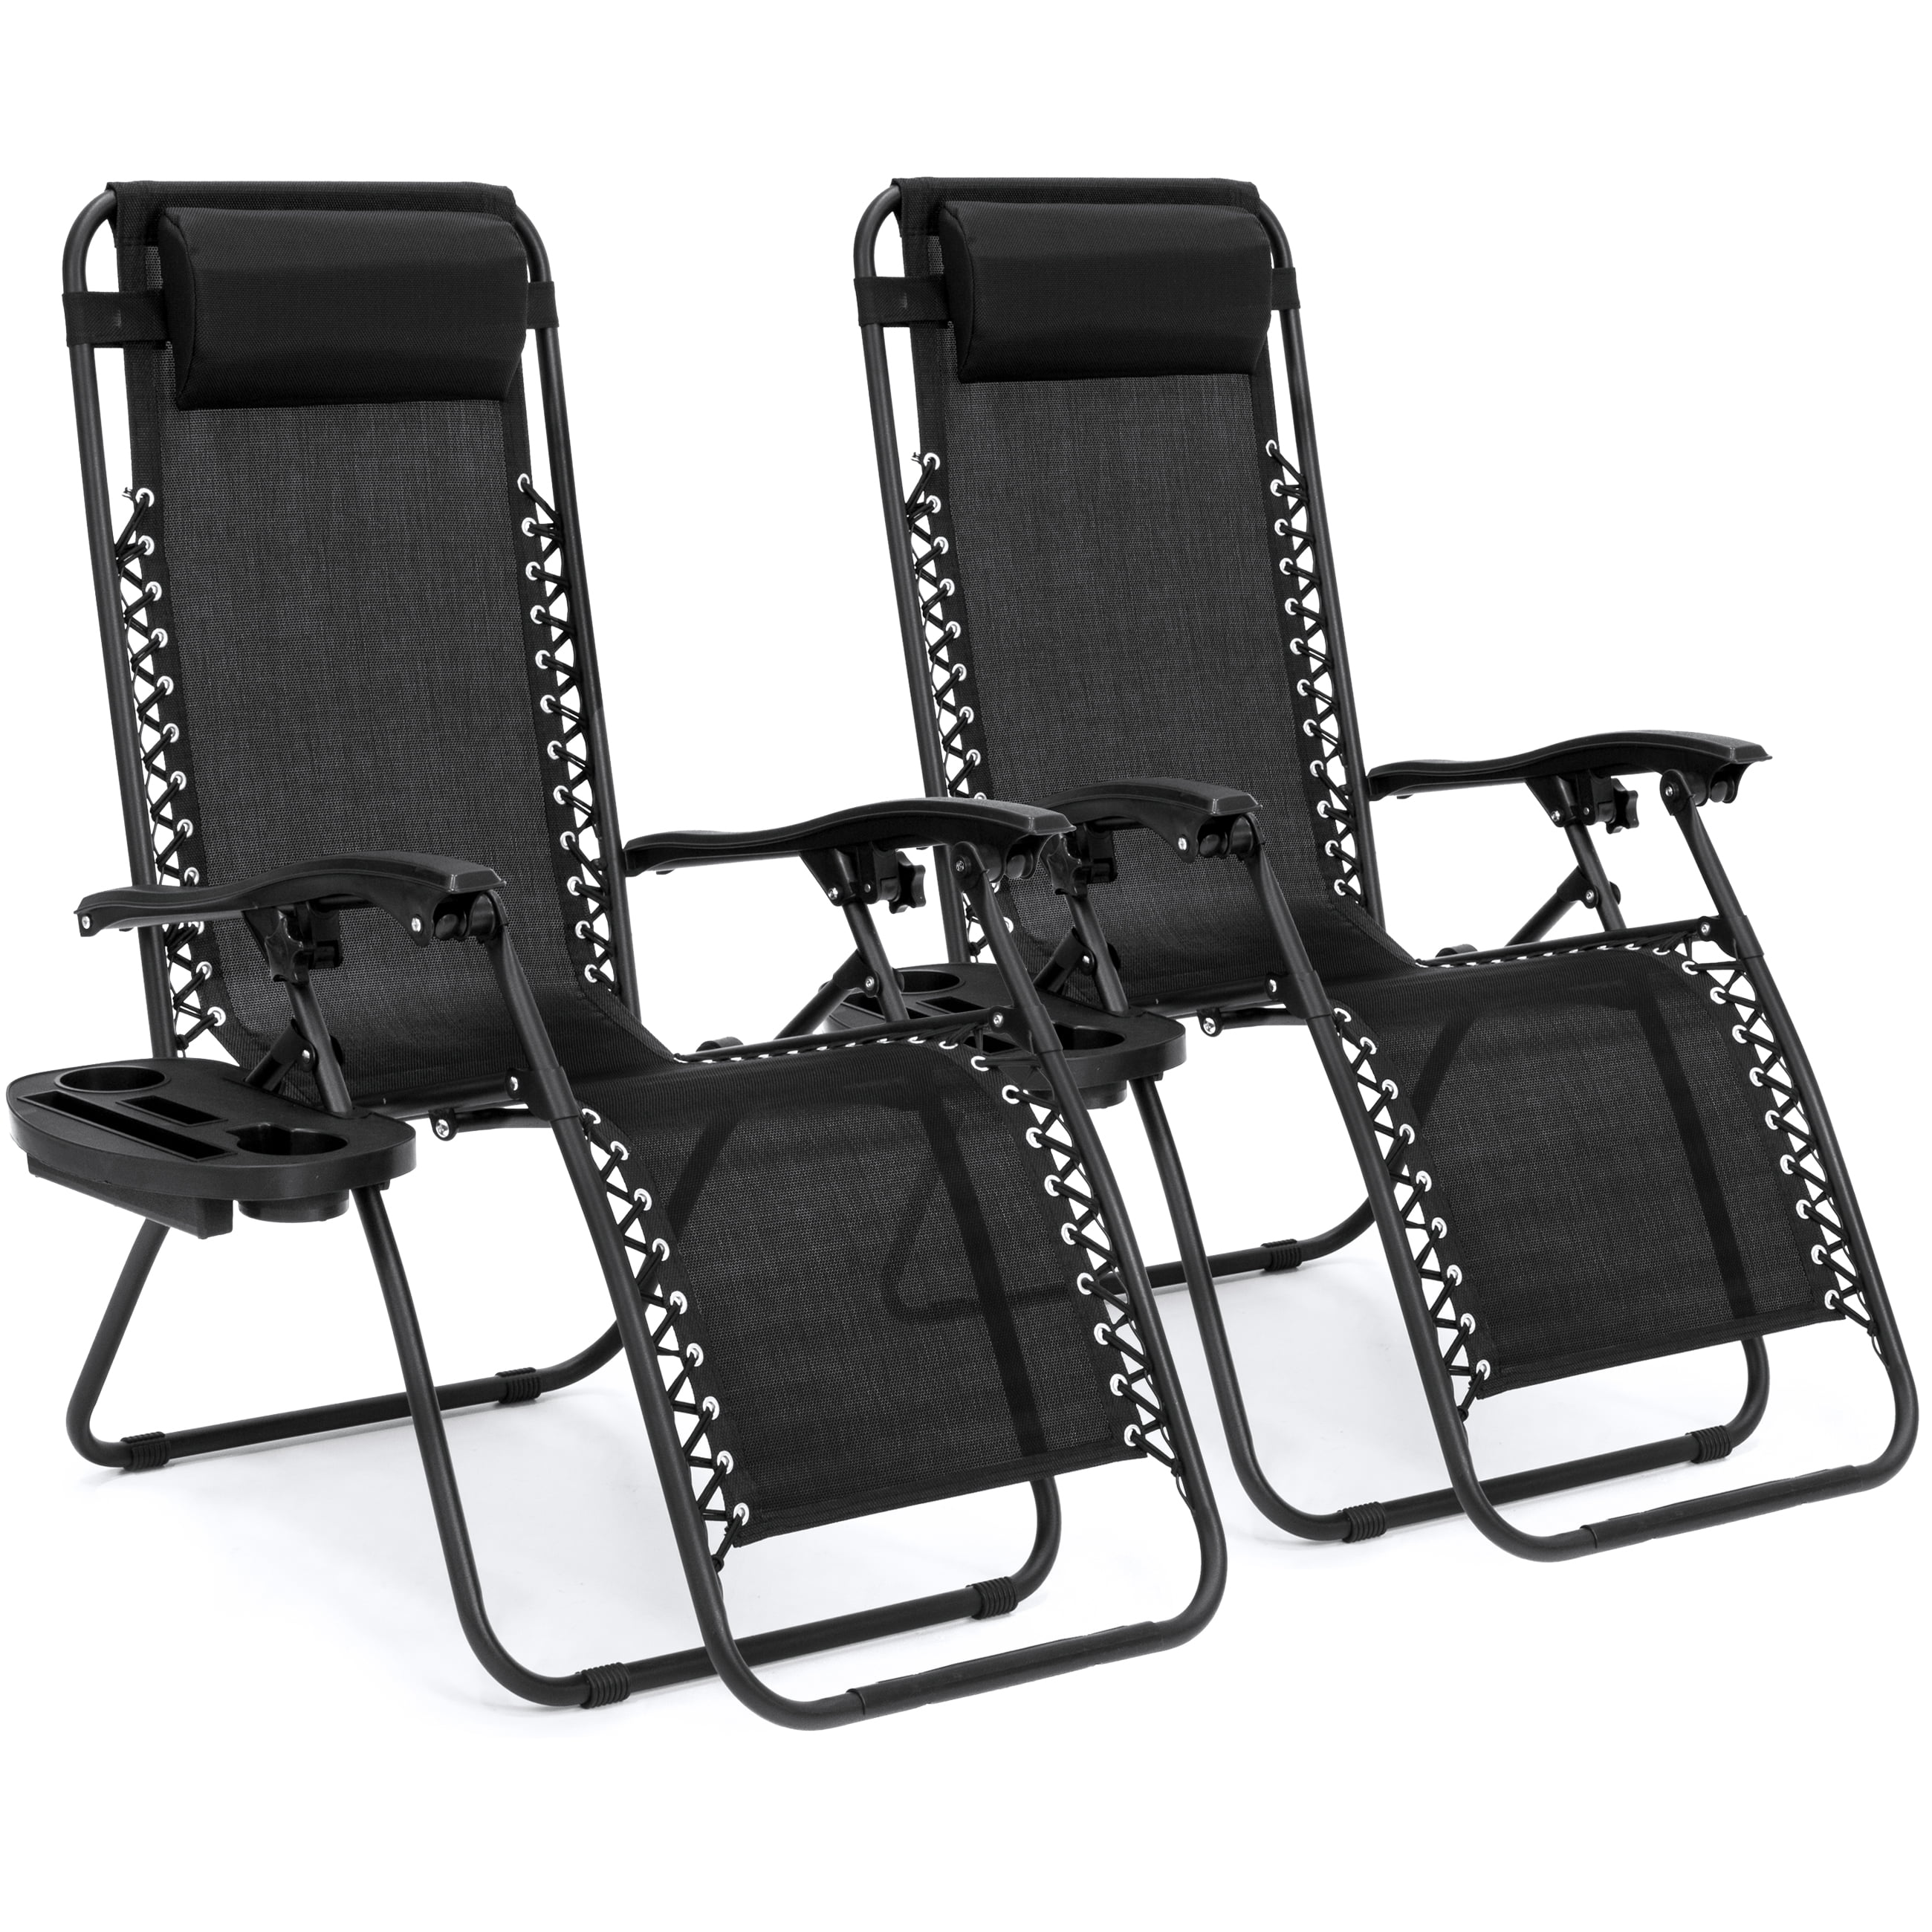 best choice products set of 2 adjustable zero gravity lounge chair recliners for patio pool with cup holders beige